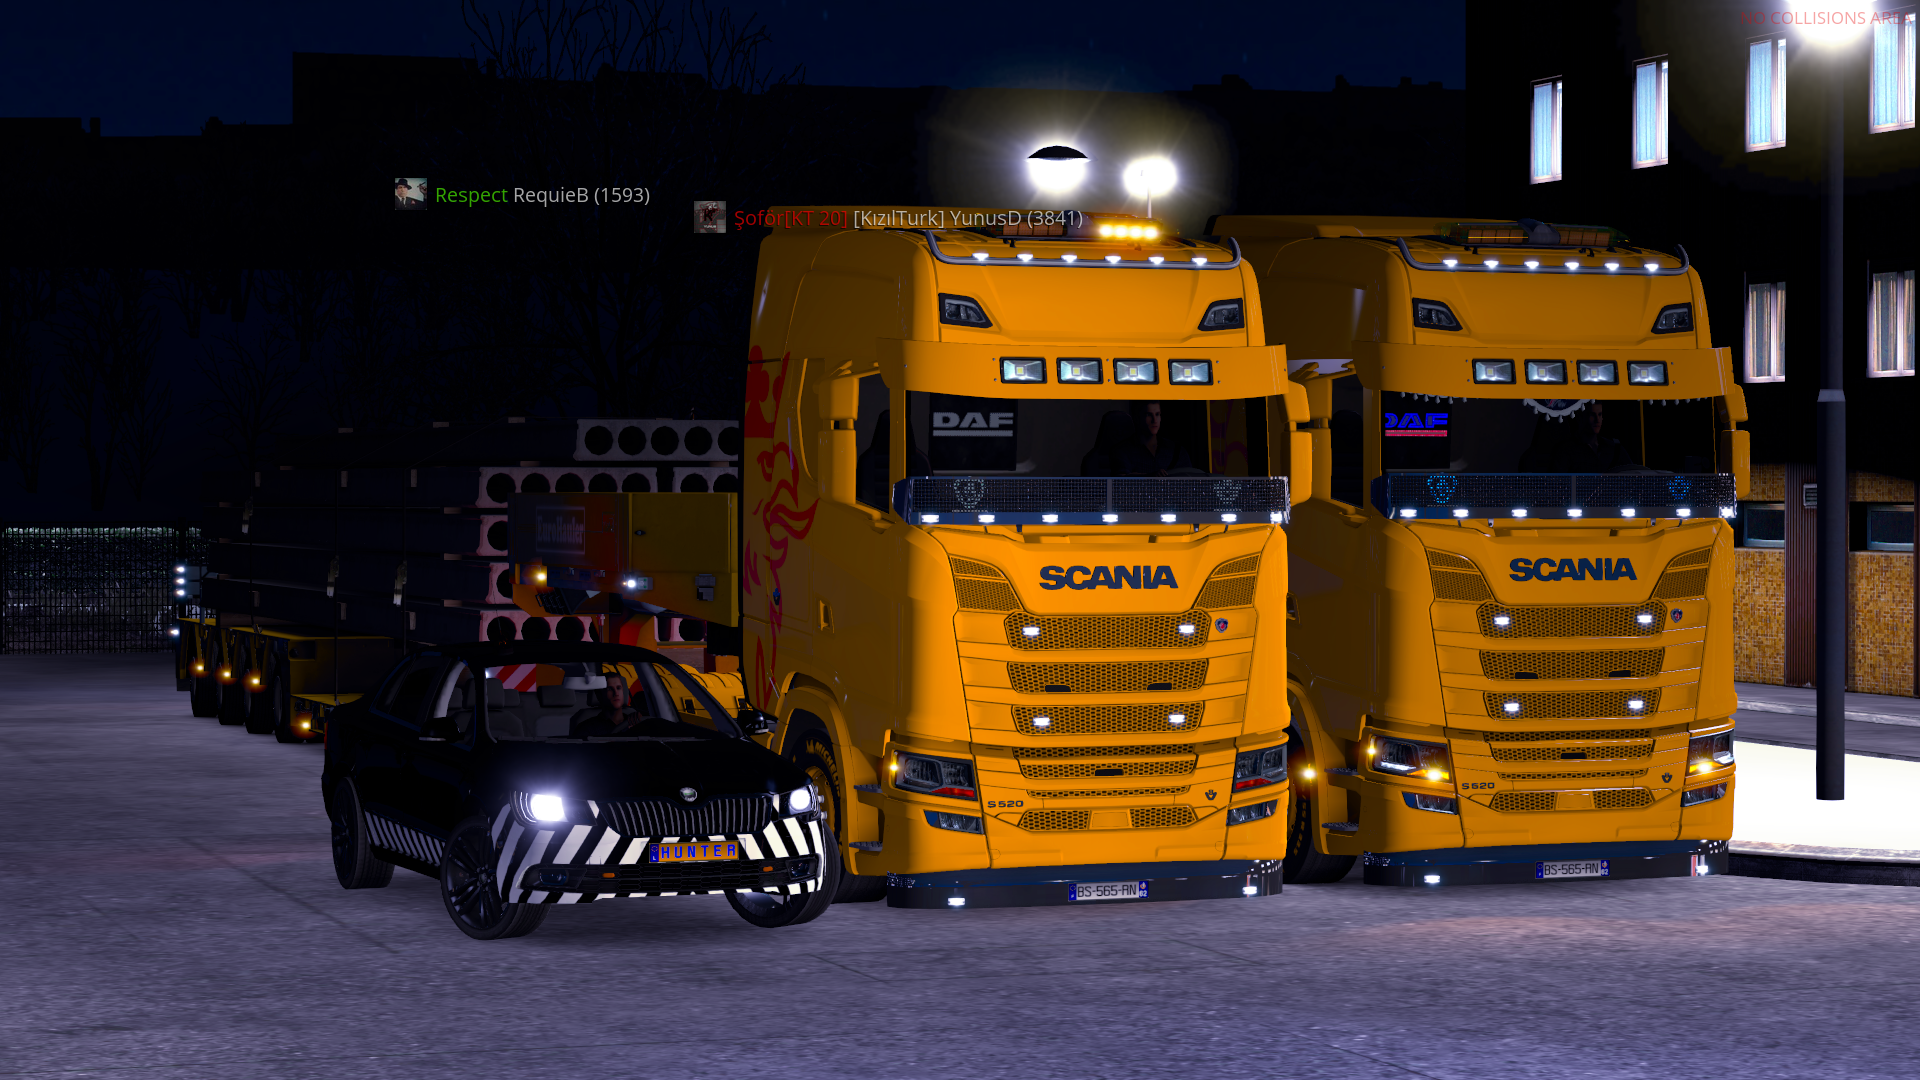 ets2_20190108_214252_00.png